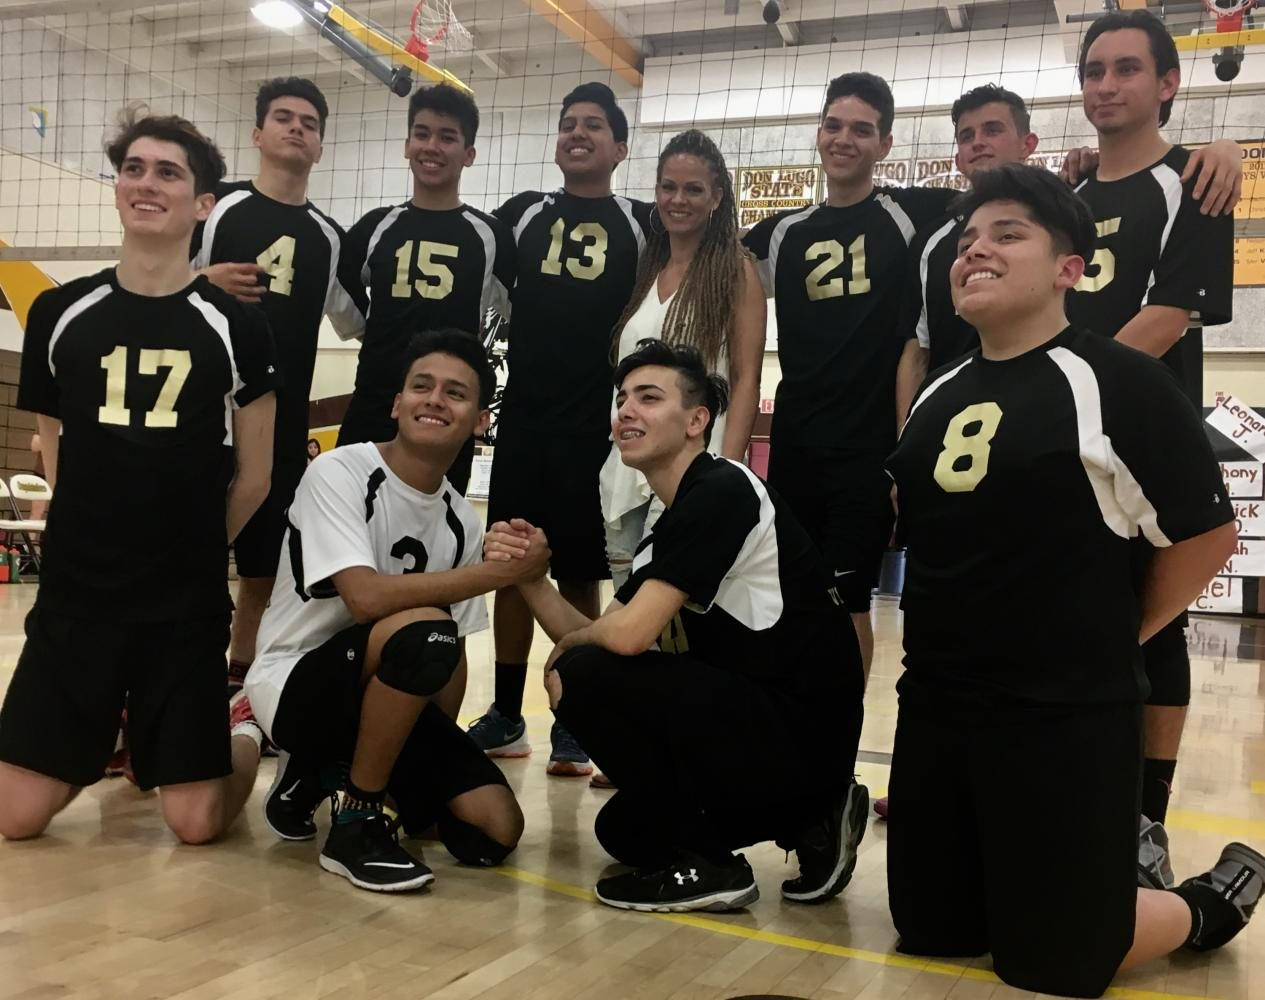 Don Lugo's boys volleyball team Class of 2017. With this being the teams first year they were able to get 10 seniors to play. The team lost 3-1 to Ganesha High school.